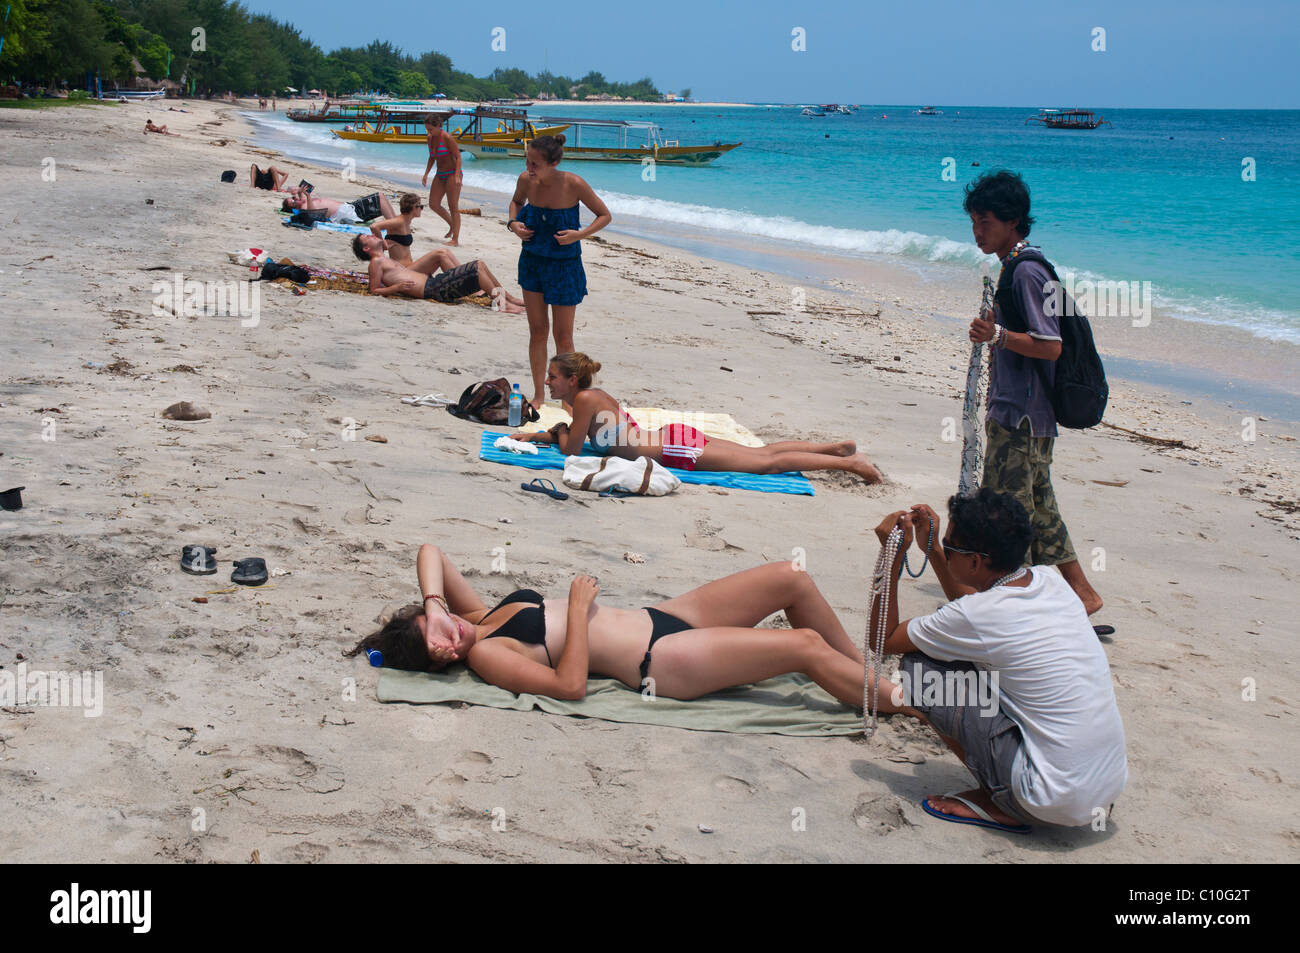 Trinket sellers pestering sunbather on beach on Gili Trawangan a small island off the costs of Lombok - Stock Image